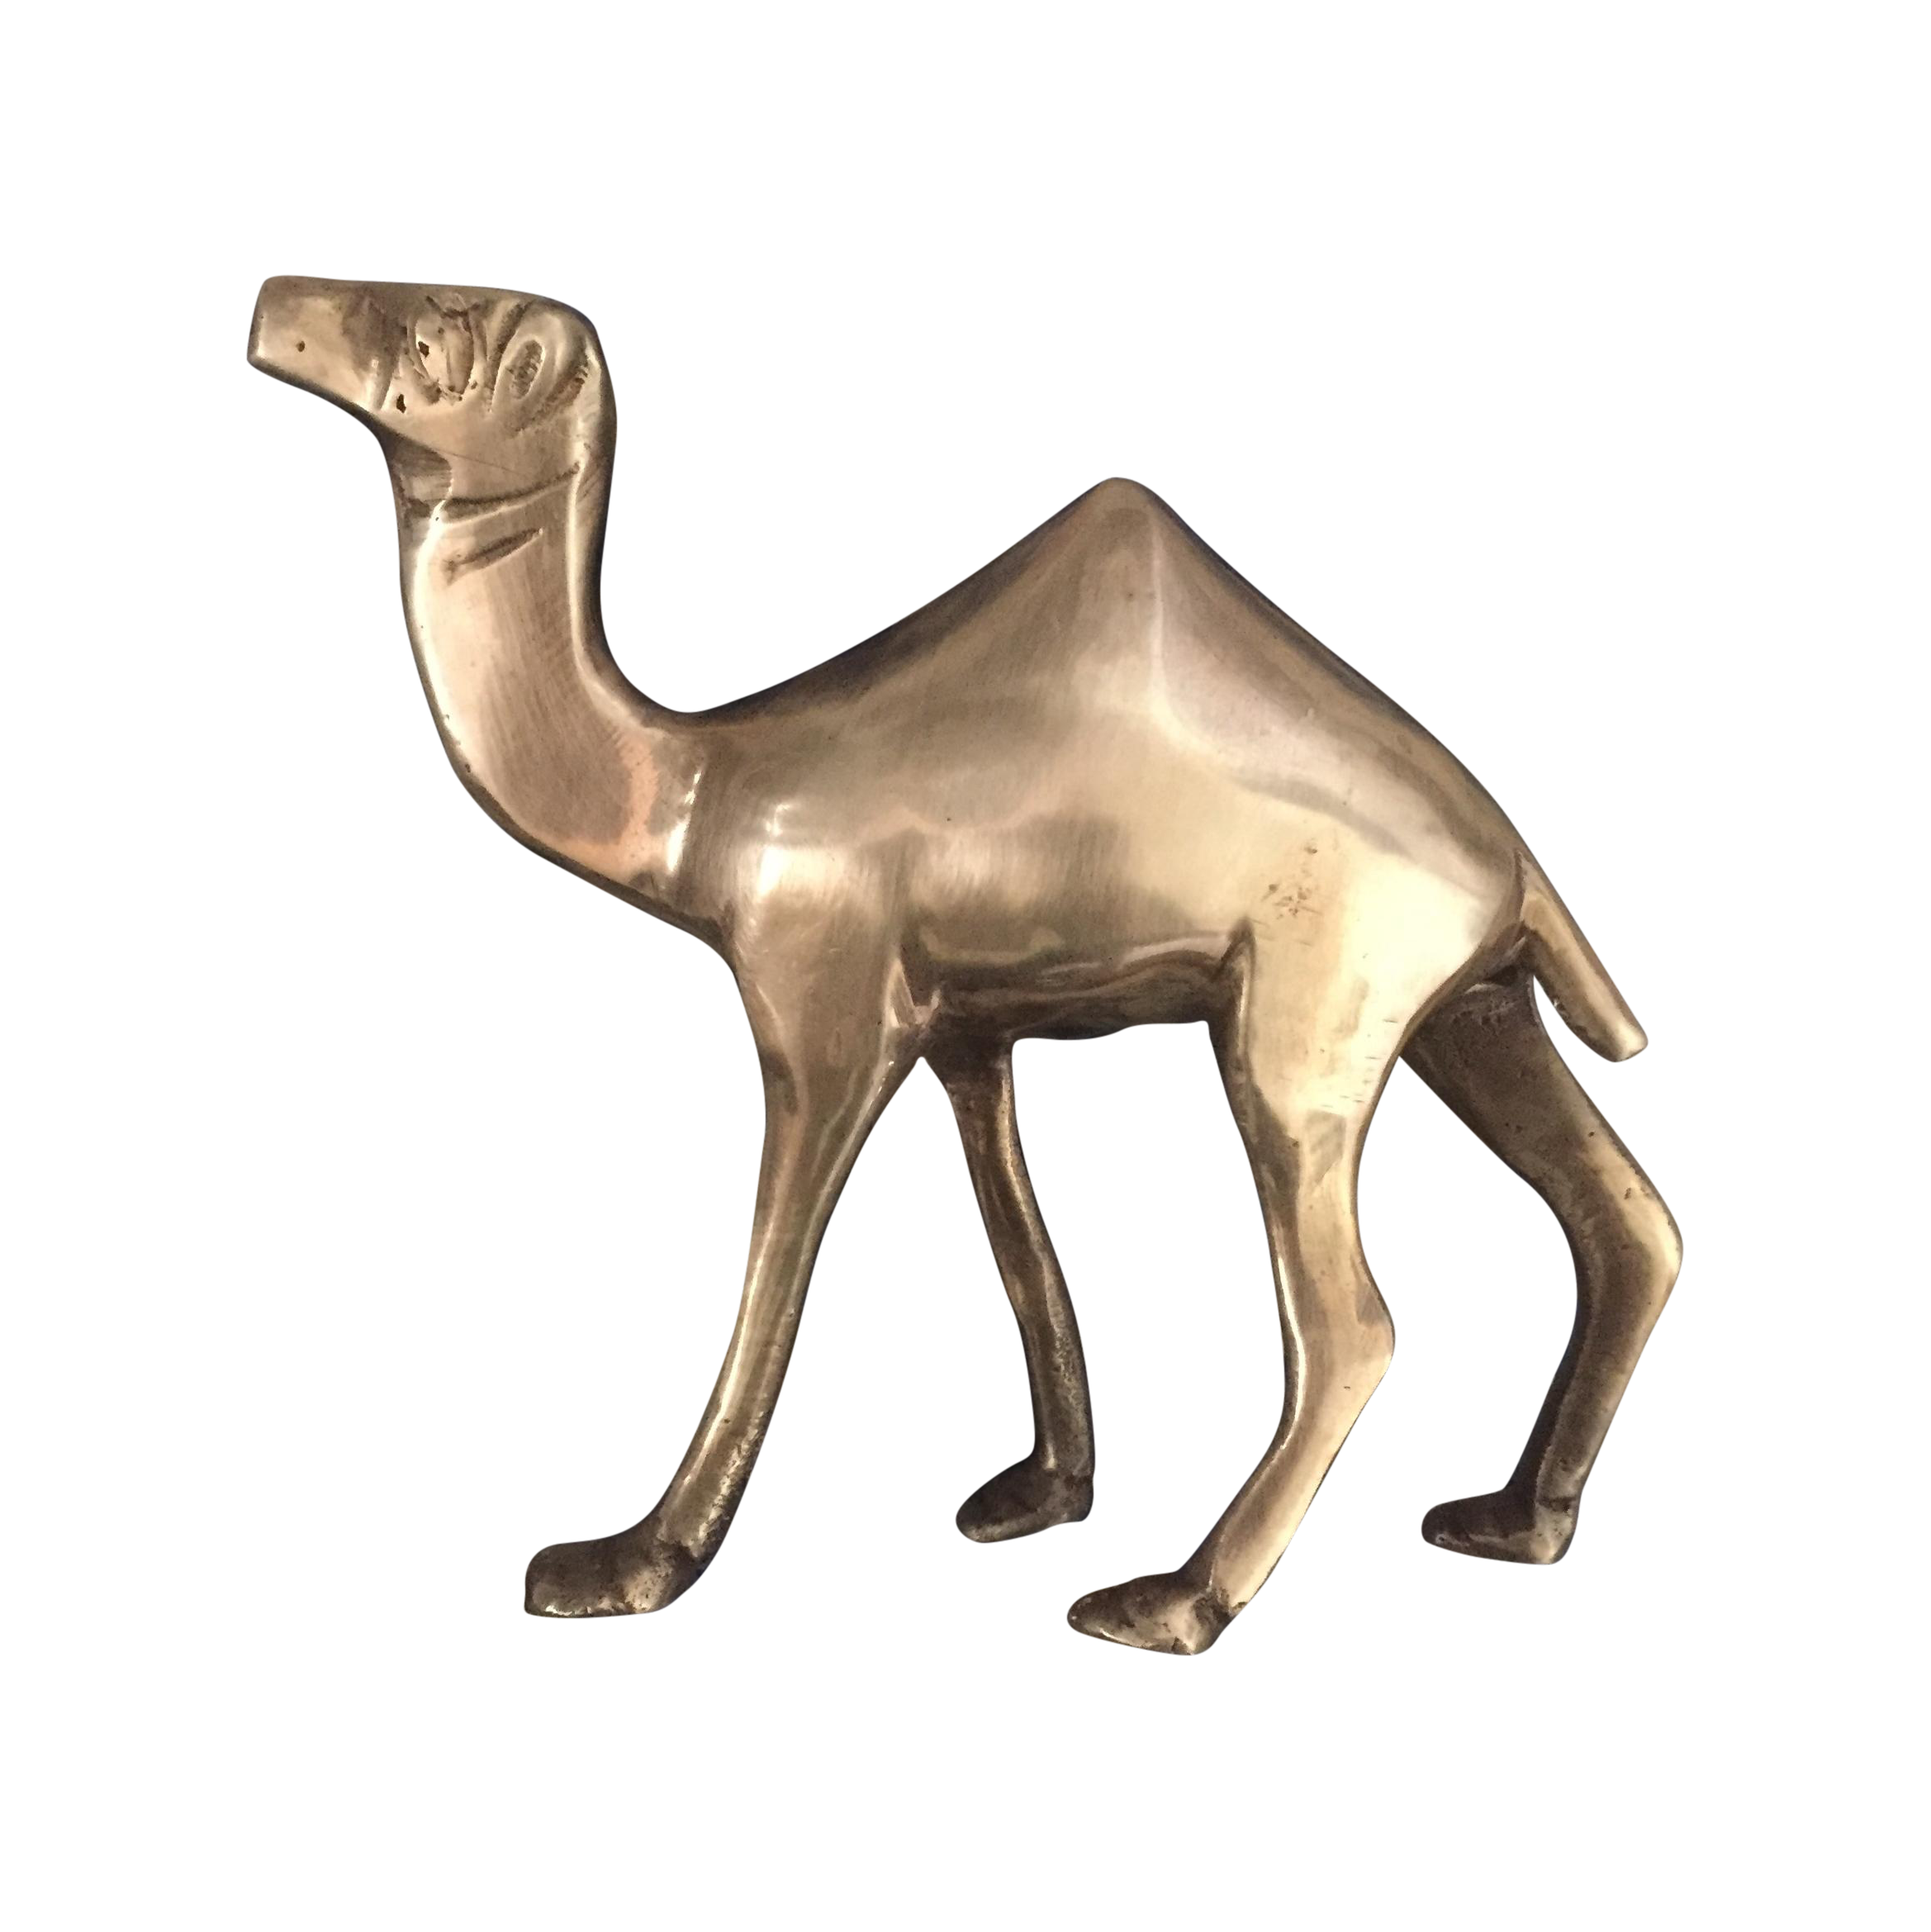 Drawing camels decorative. Brass camel figurine statue